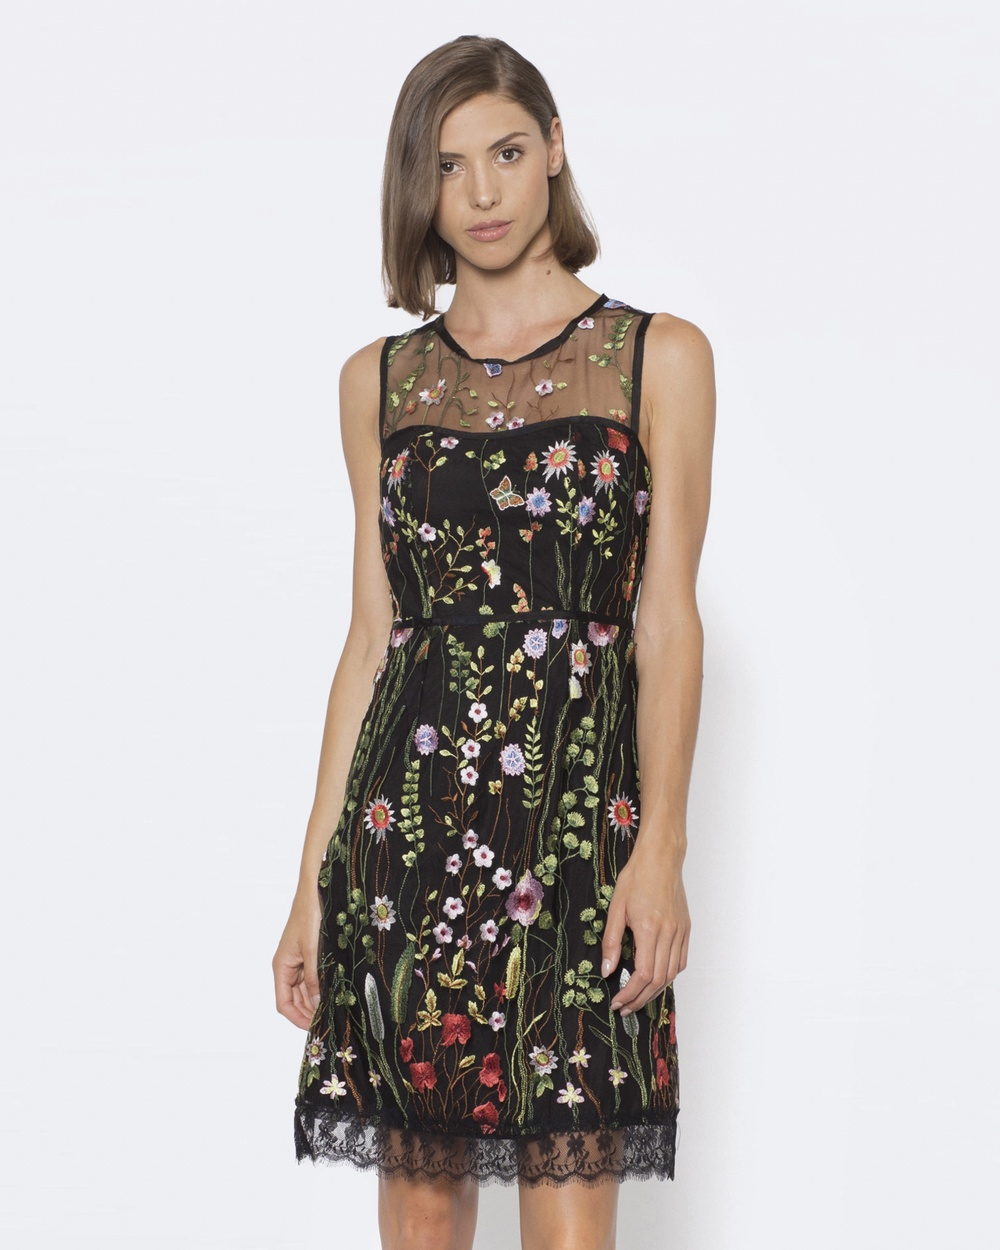 Alannah Hill Over The Prairie Dress Dresses Multi Over The Prairie Dress